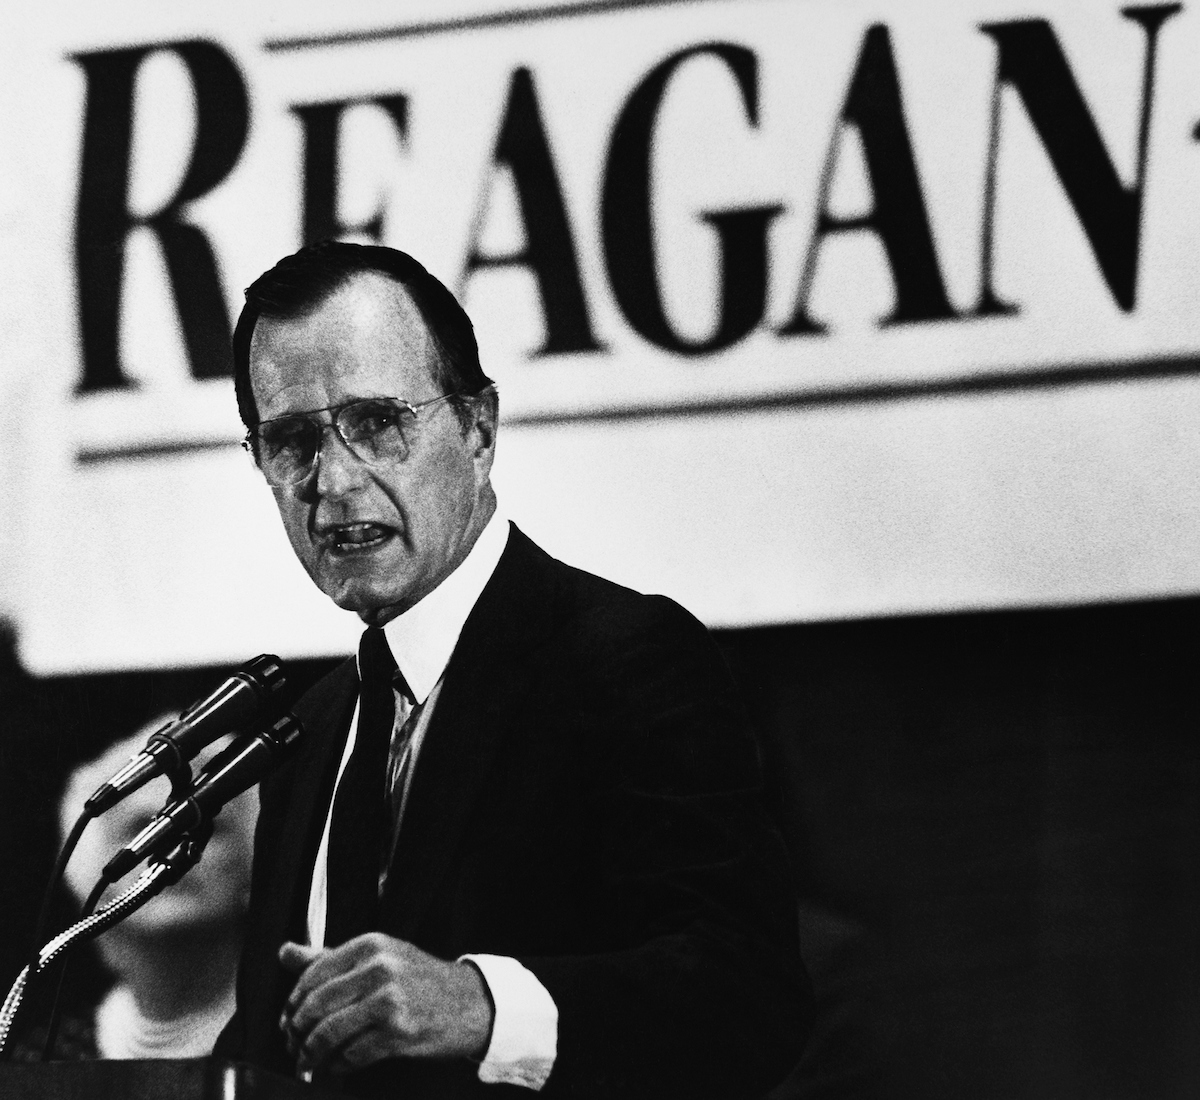 Vice President George H.W. Bush gets worked up about what he called gloom and doom speeches by the Democrats. Bush made a campaign stop at a Colorado GOP party on July 12, 1984. (CQ Roll Call Archive)